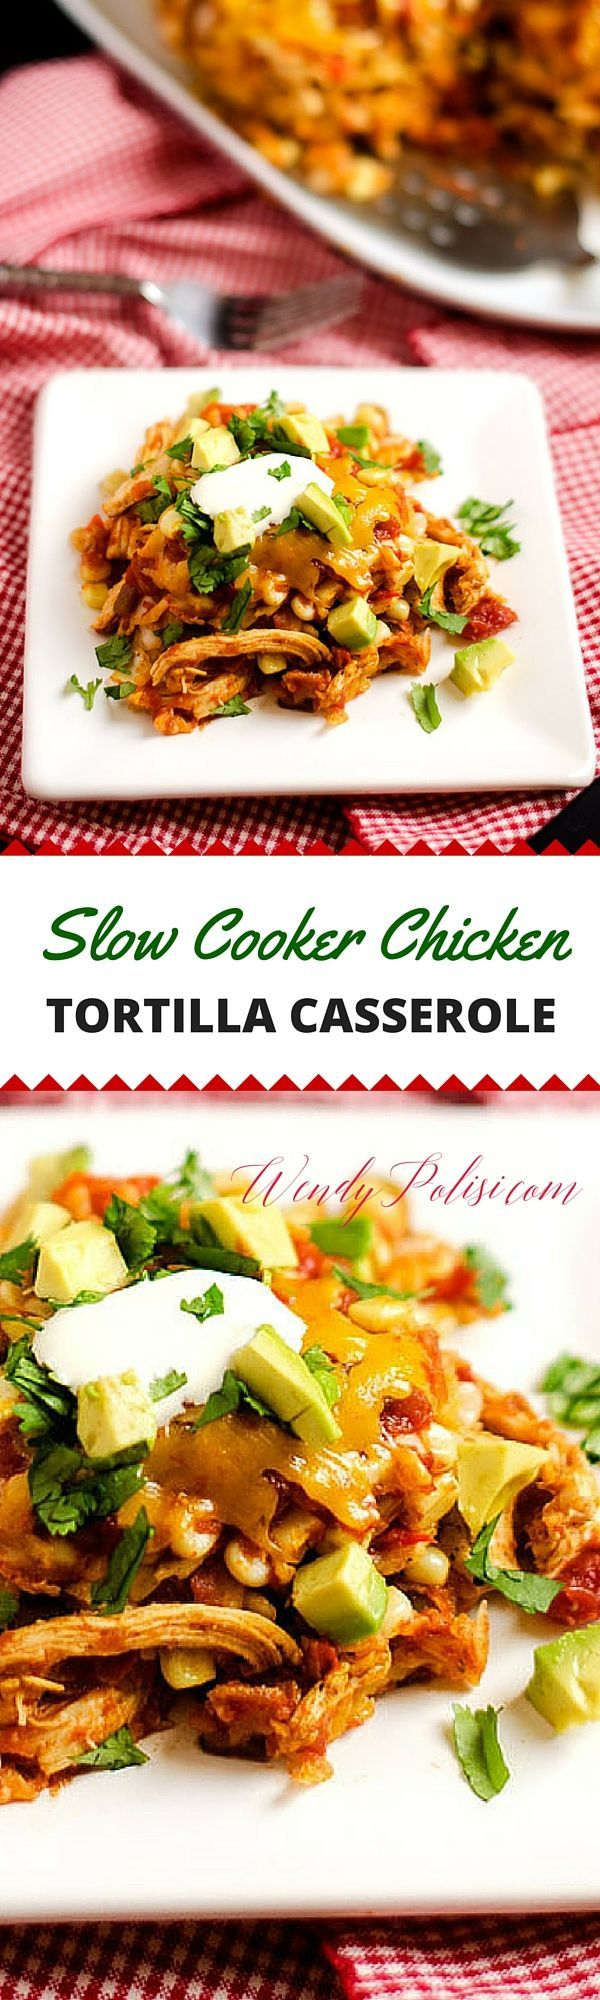 This Slow Cooker Chicken Tortilla Casserole is the perfect weeknight meal solution! With red pepper, corn, chicken, cheese and salsa, this slow cooker meal is one the whole family will love.